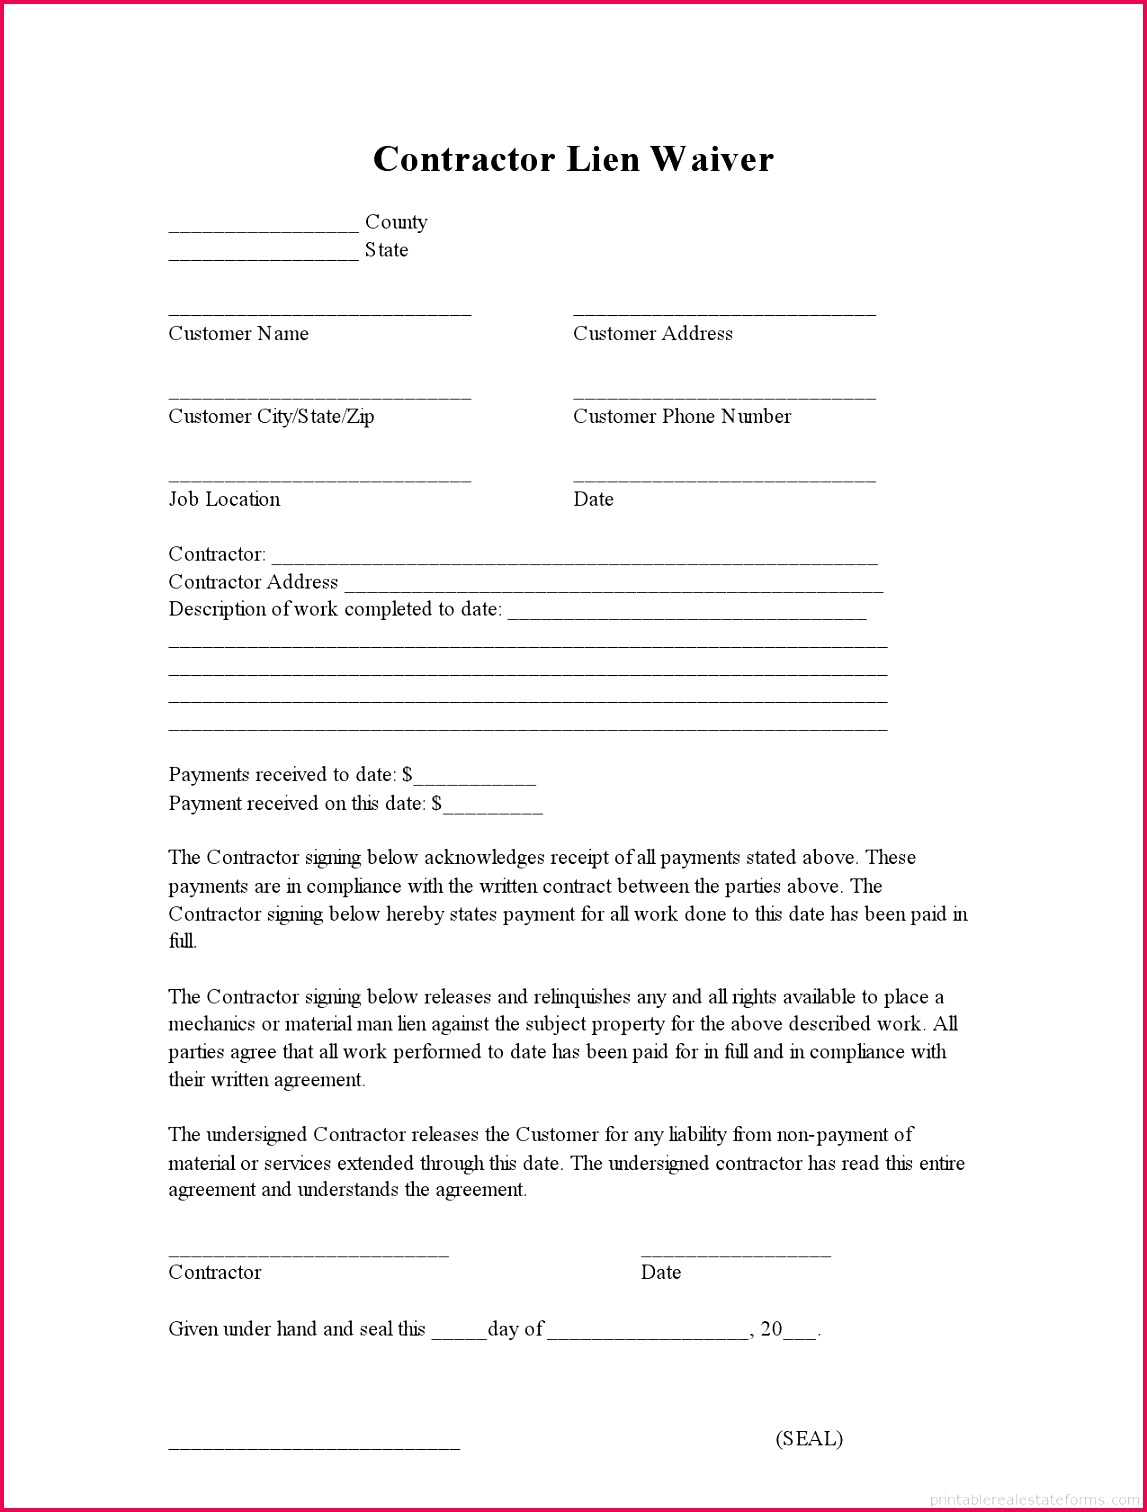 free contractor certificate of pletion form lovely sample resume for property manager bsw resume 0d property management of free contractor certificate of pletion form